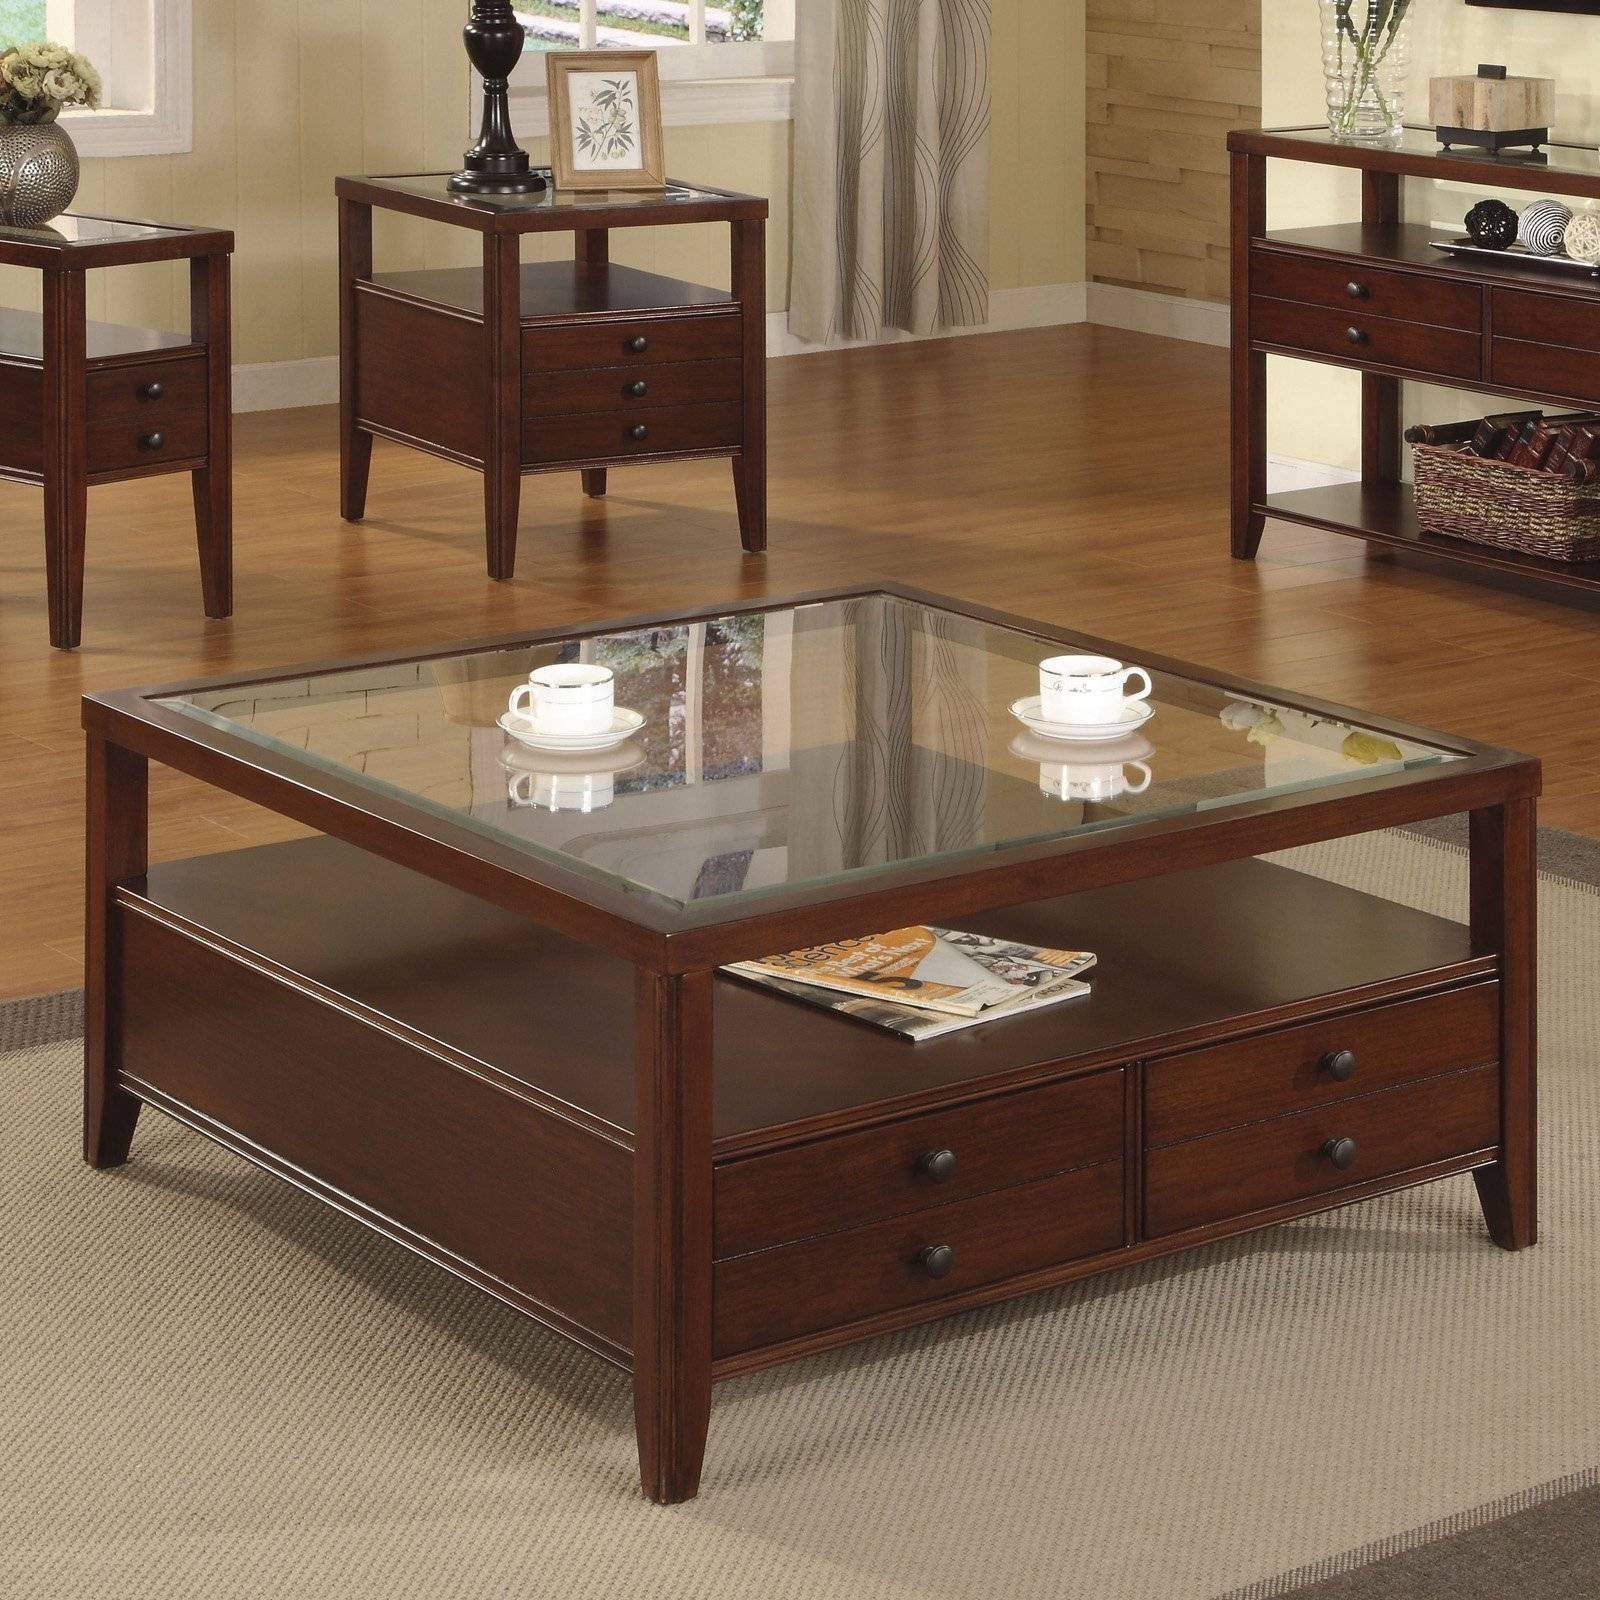 Large Square Coffee Table Wood Material Brown Finish 4 Legs Rustic for Square Coffee Tables With Drawers (Image 21 of 30)